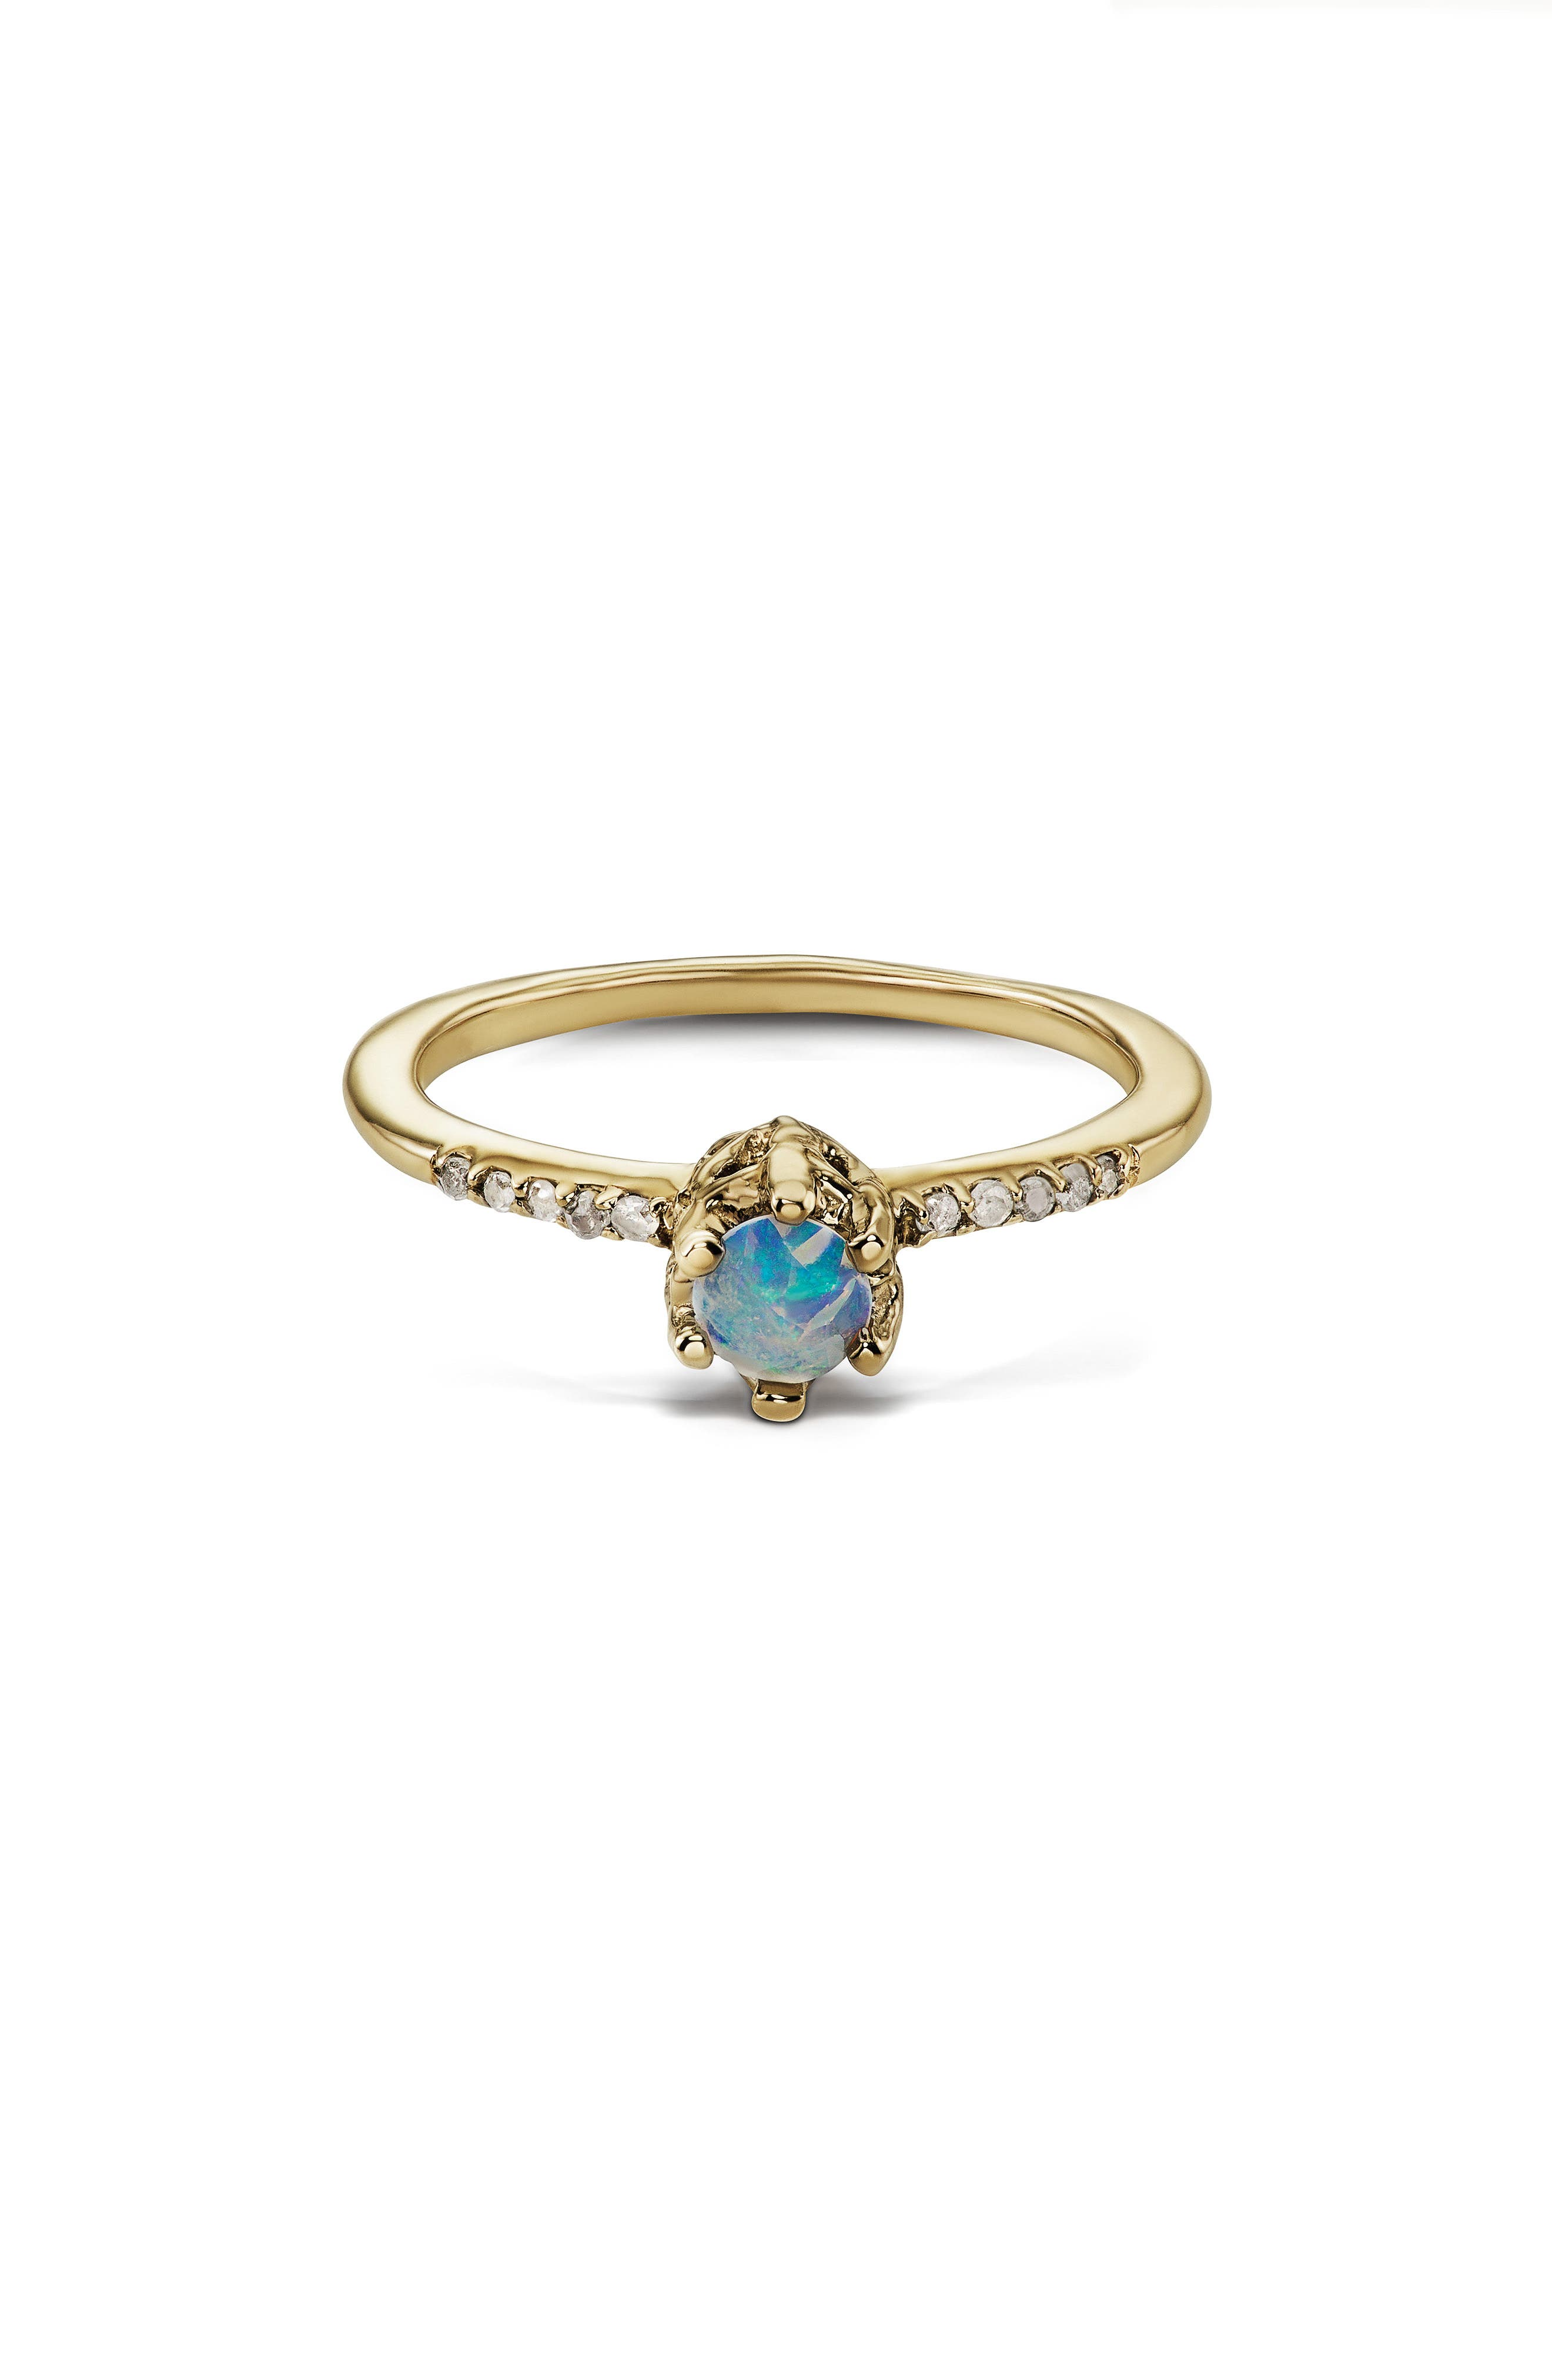 Entity Opal & Diamond Solitaire Ring,                             Main thumbnail 1, color,                             YELLOW GOLD/ OPAL